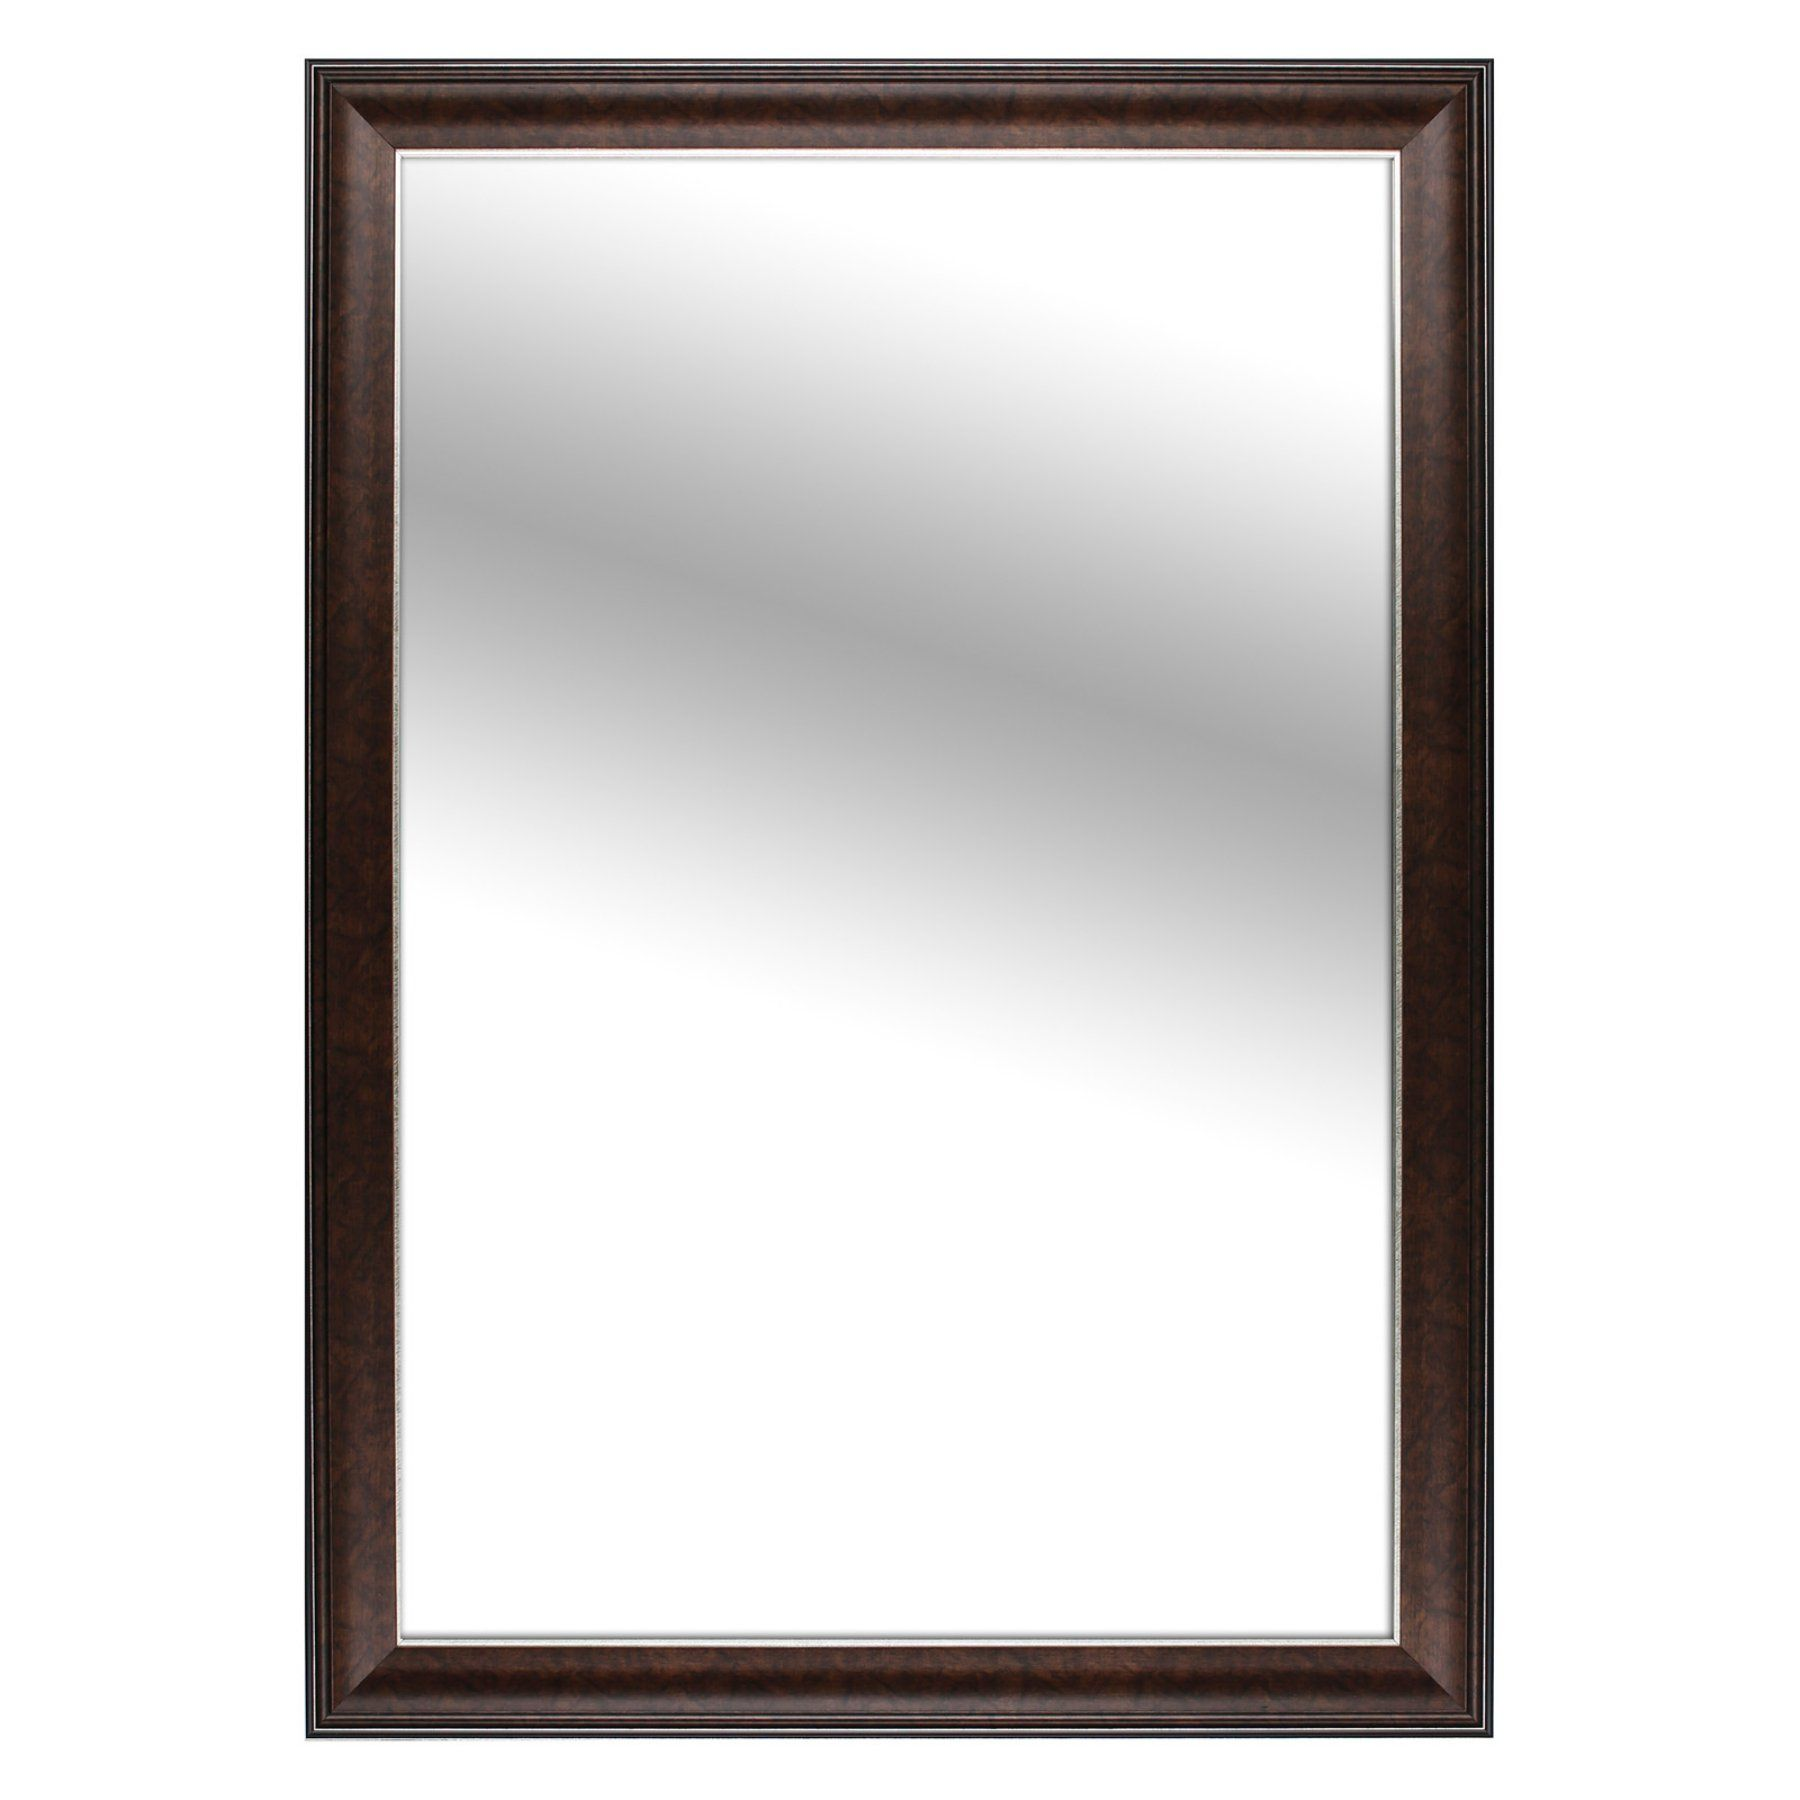 Mirrorize Canada Bronze Framed Mirror  29W X 41H In